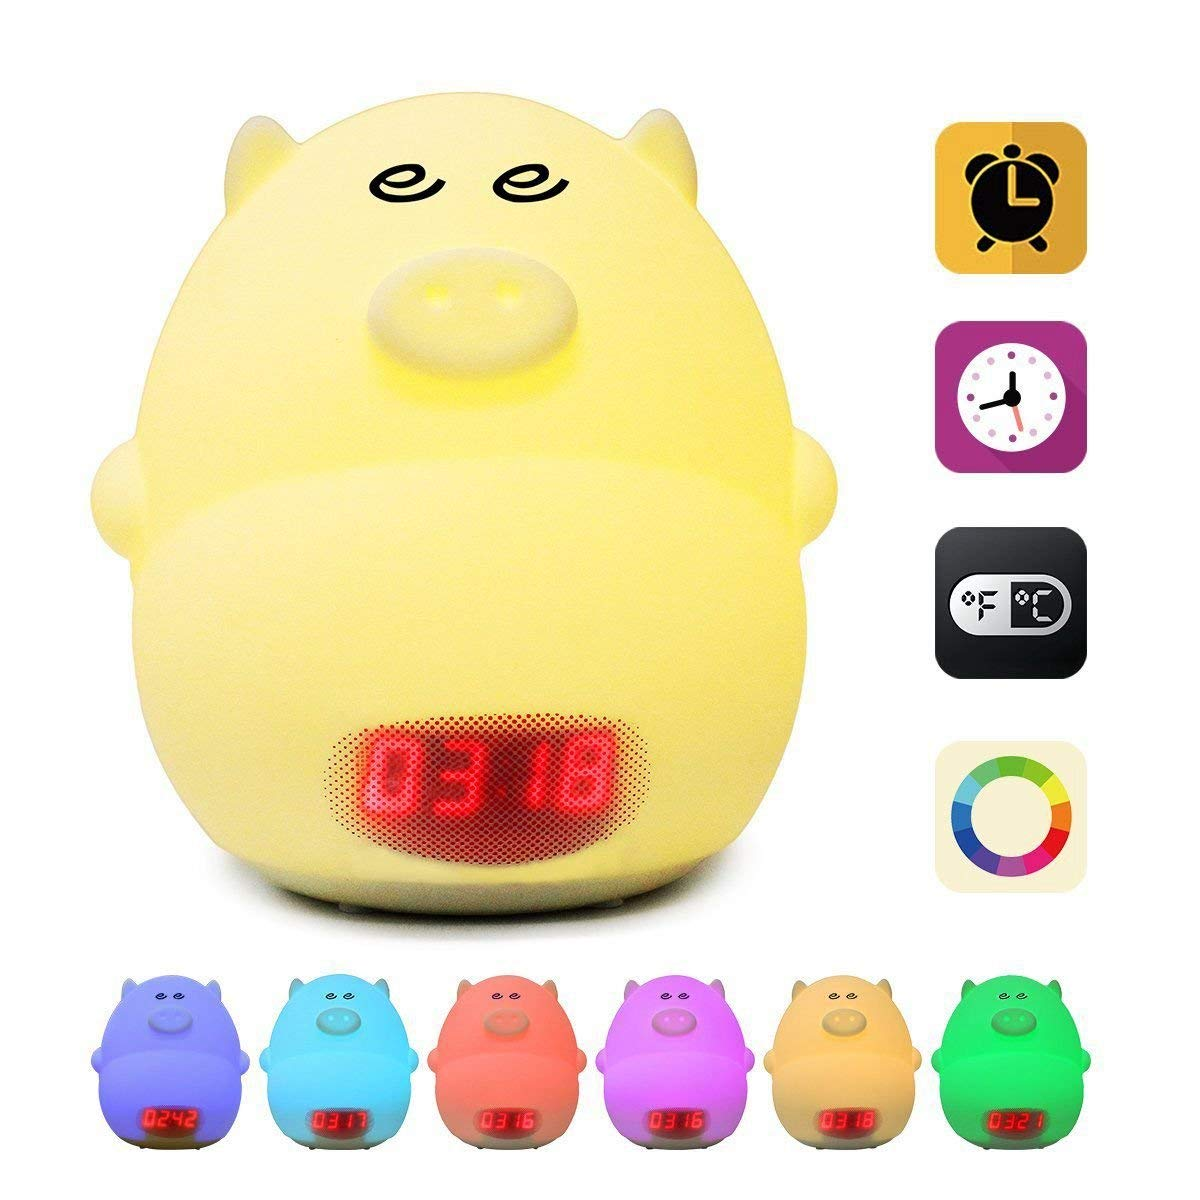 Axiwen Night Light Alarm Clock for Kids Cute Pig Clock USB LED Lights Silicone Baby Lamp Color Changing 2 Alarms 3 Sounds